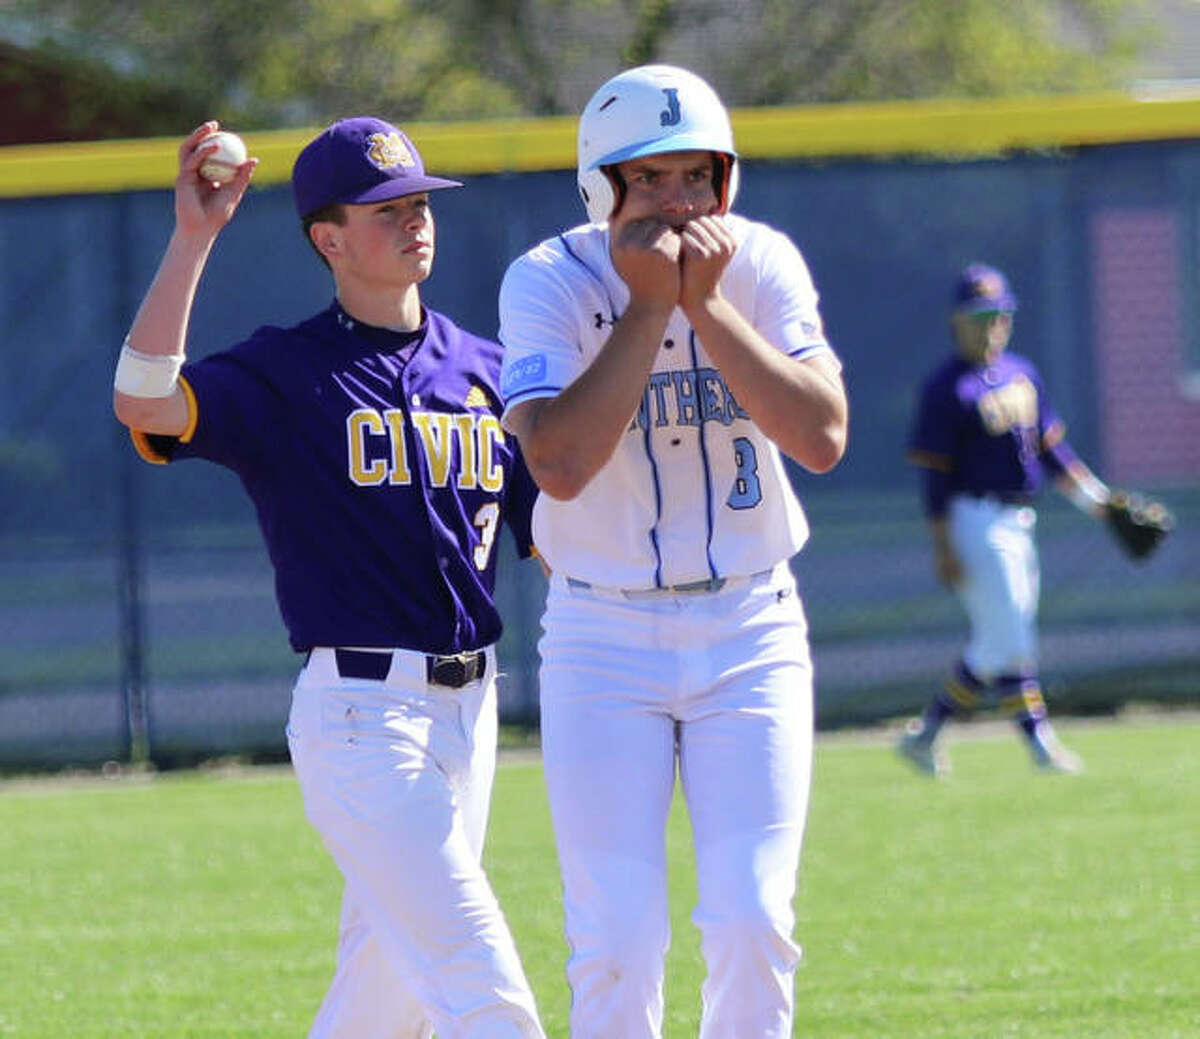 Jersey's Cal Gorman (8) acknowledges the reaction from teammates in the dugout after his double while CM shortstop Luke Parmentier (left) gets the ball back to the pitcher during a MVC baseball game last week in Jerseyville.